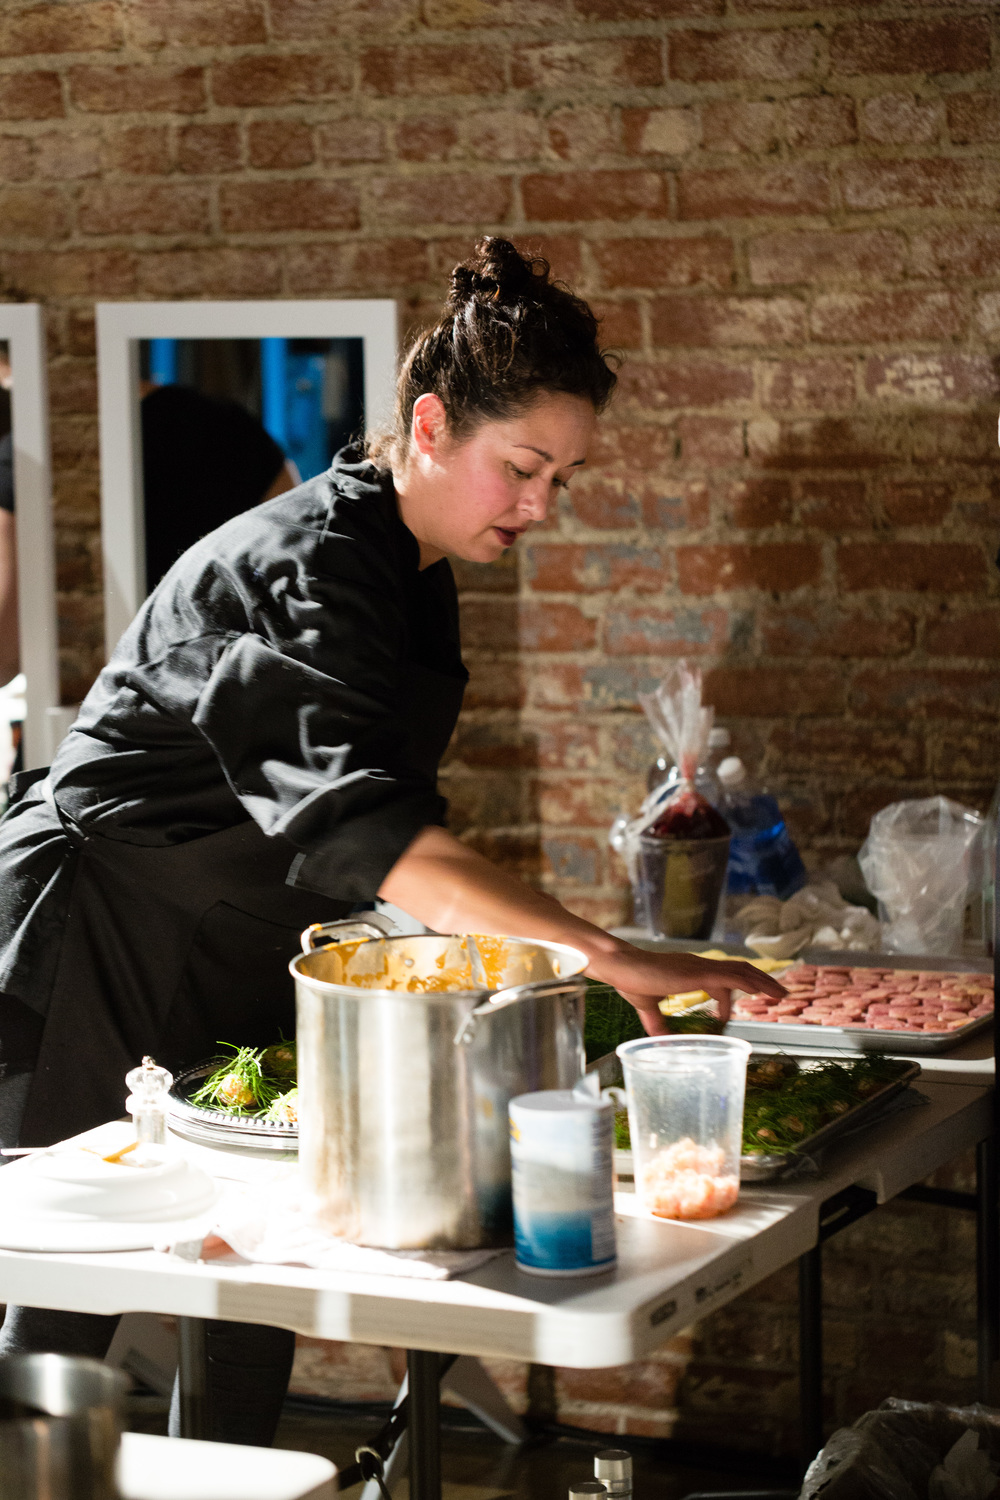 The Fleiss Feast  2016 Interactive dinner collaboration (chef preparation) In collaboration with Los Angeles Eats Itself, Chef Teresa Montańo and Chef Mia Wasilevich March 6th, 2016, LA River Studio, Los Angeles, CA photo courtesy of Michael Underwood